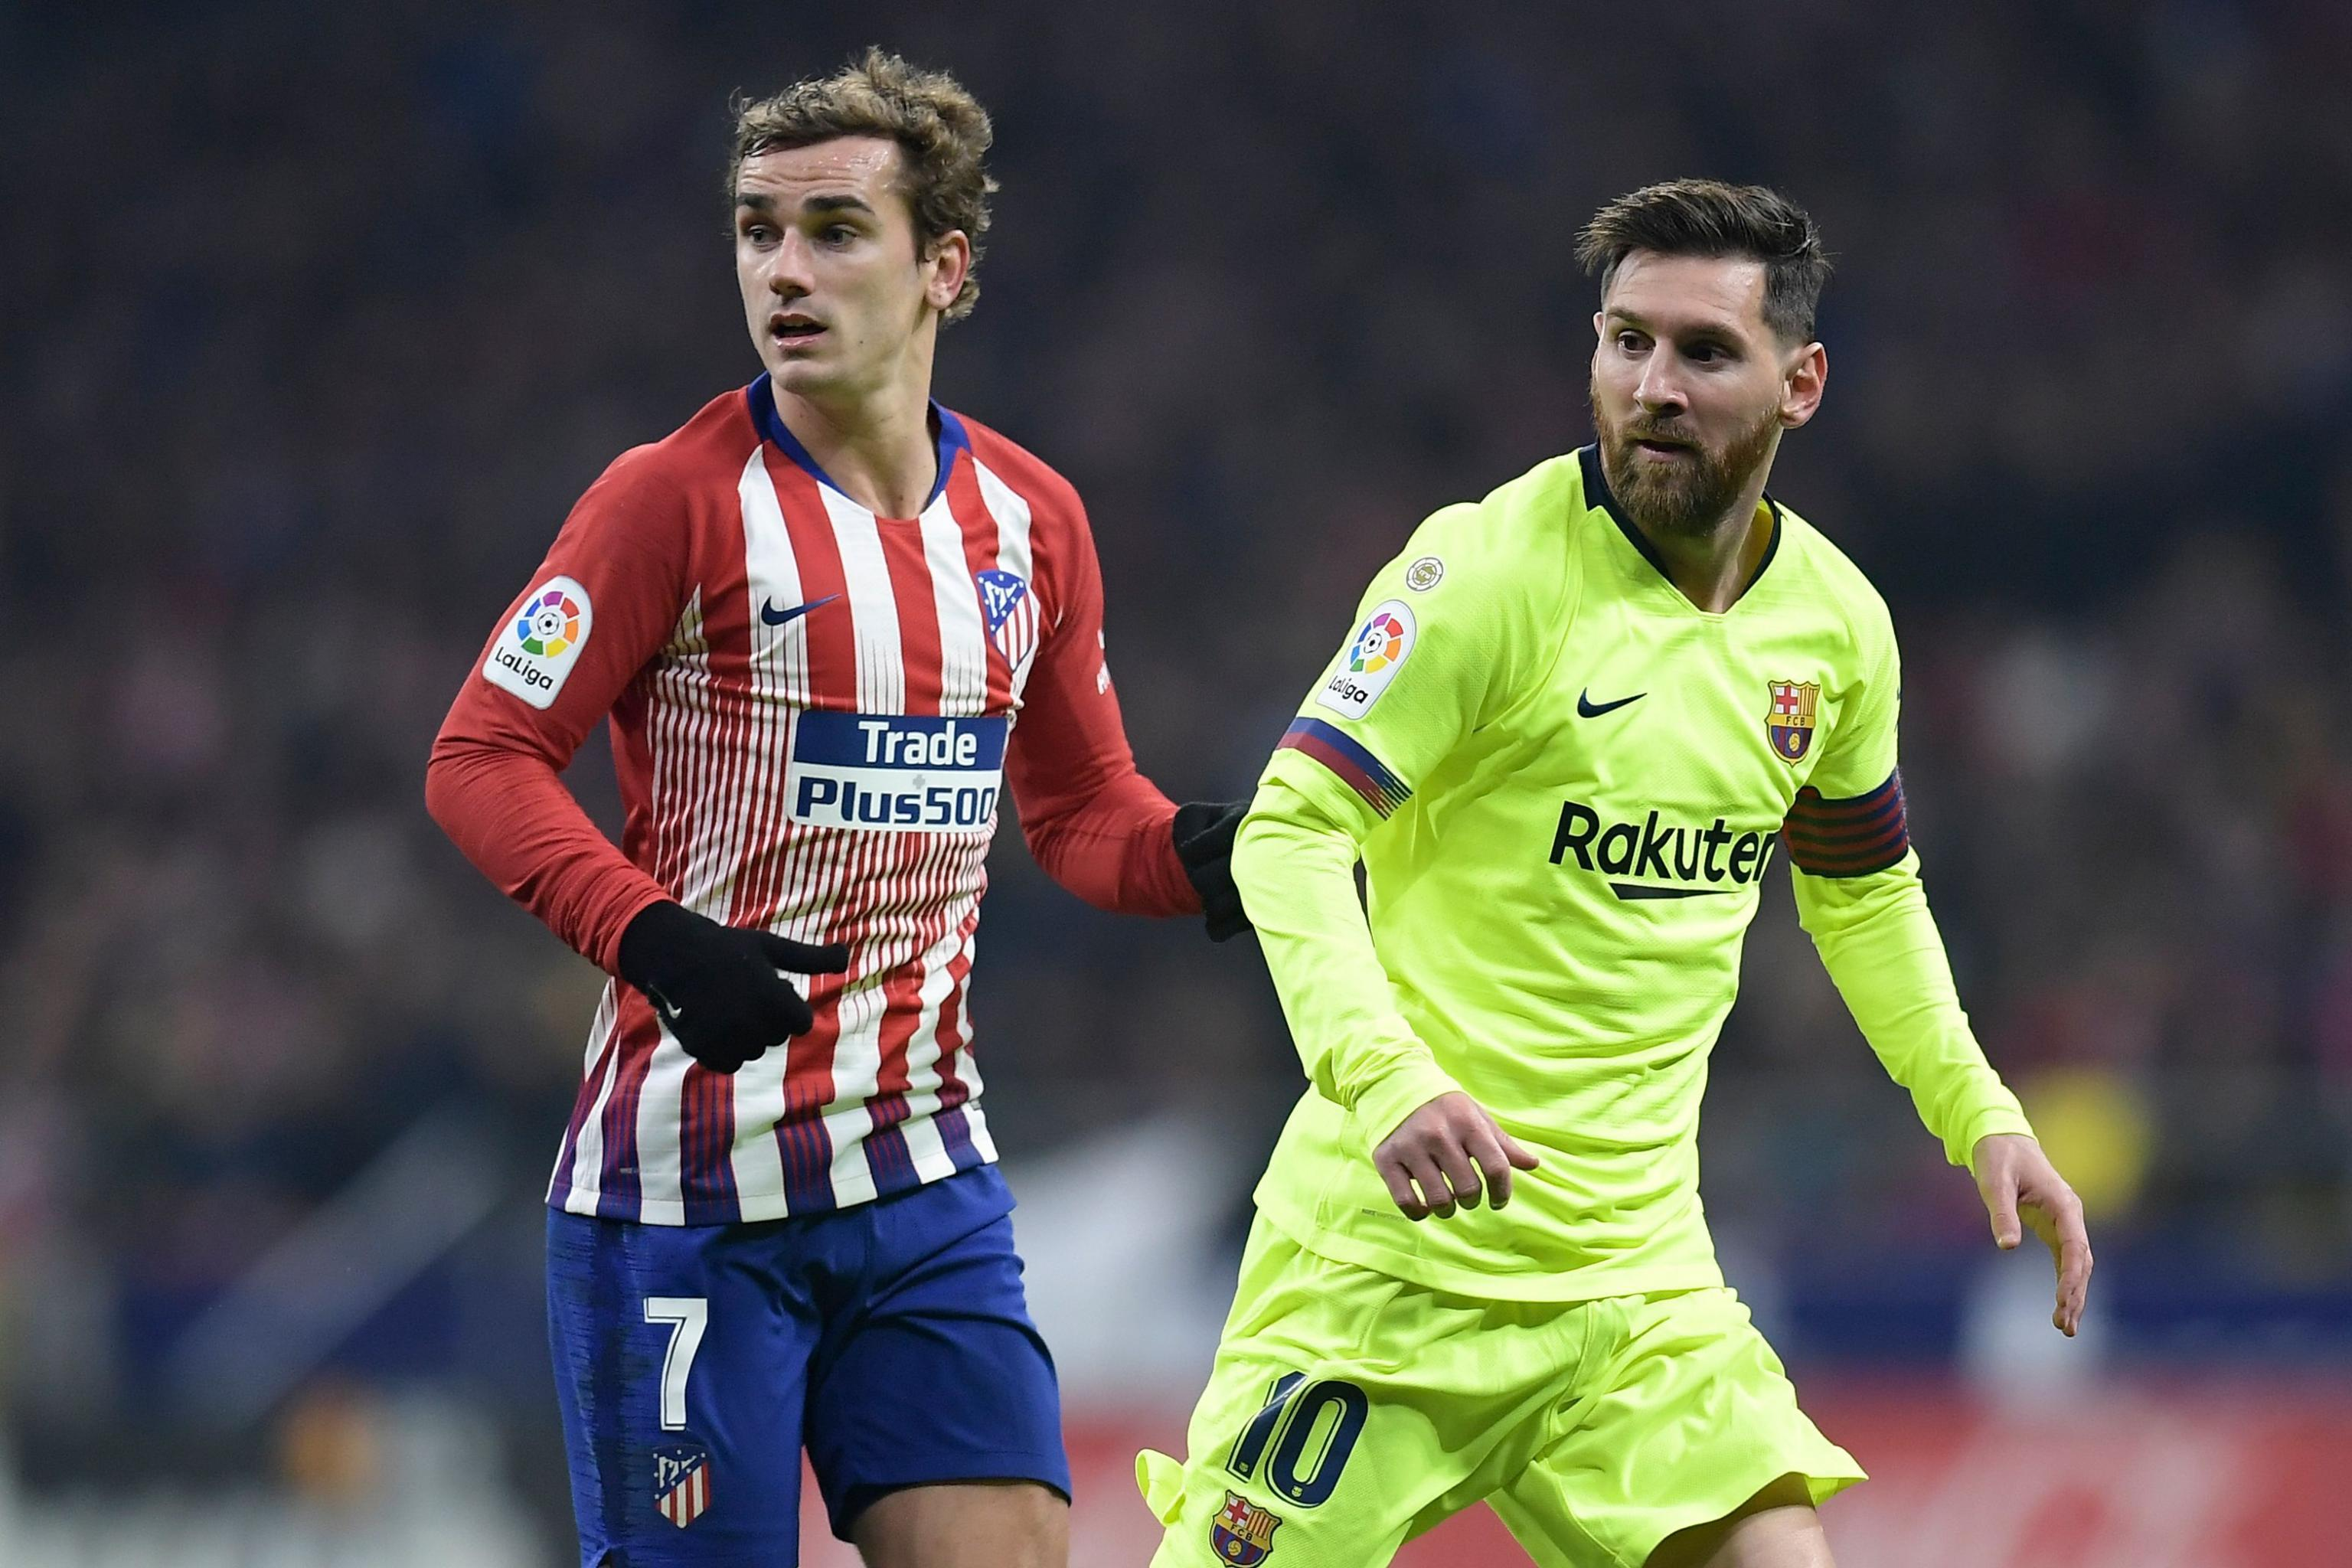 Lionel Messi Tops Cristiano Ronaldo Antoine Griezmann In L Equipe Rich List Bleacher Report Latest News Videos And Highlights